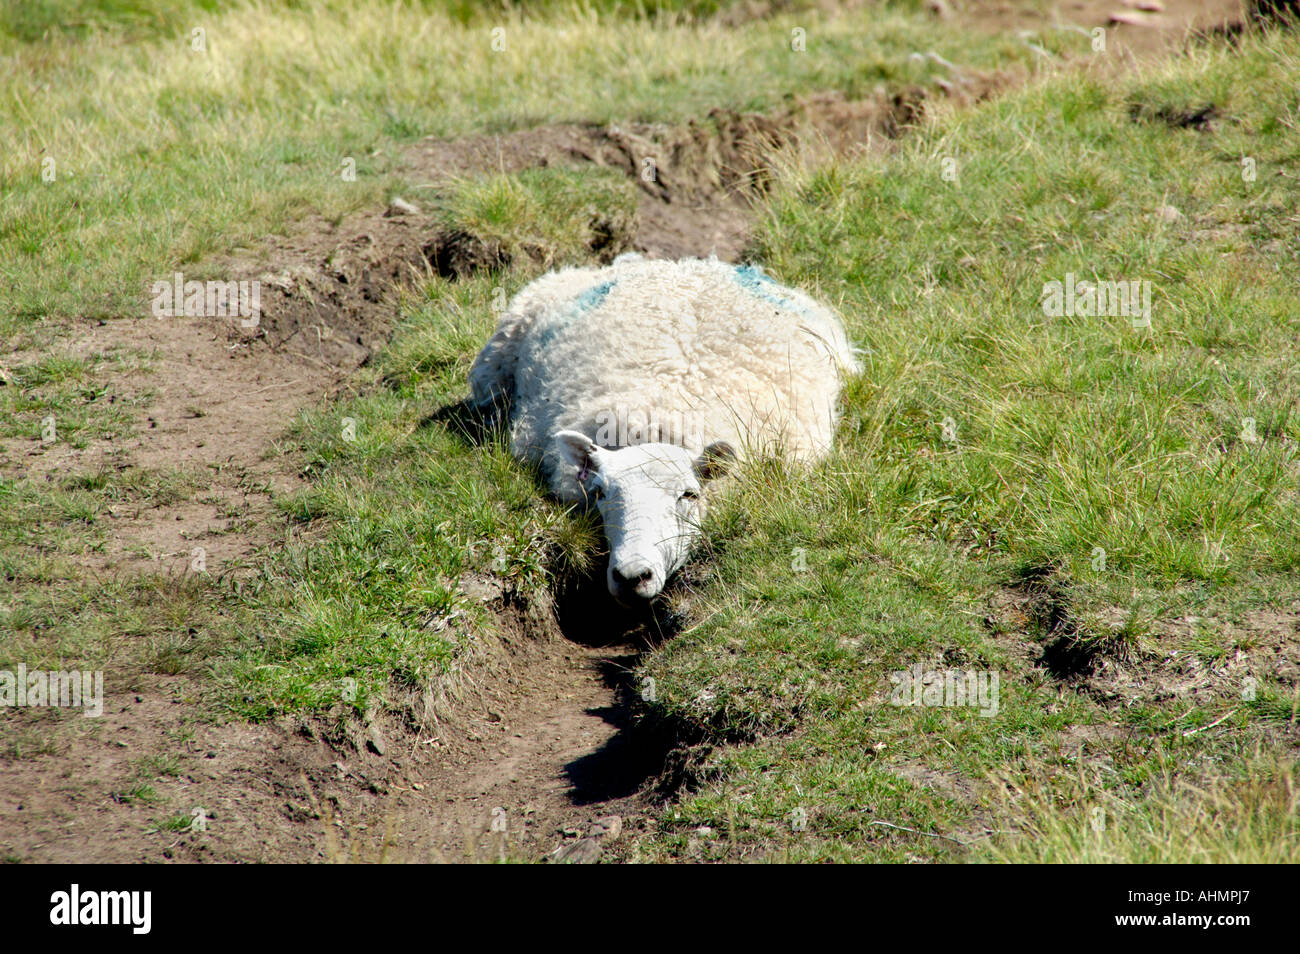 Sheep trying to keep cool in an erosion rut in the Brecon Beacons National Park Powys South Wales UK - Stock Image